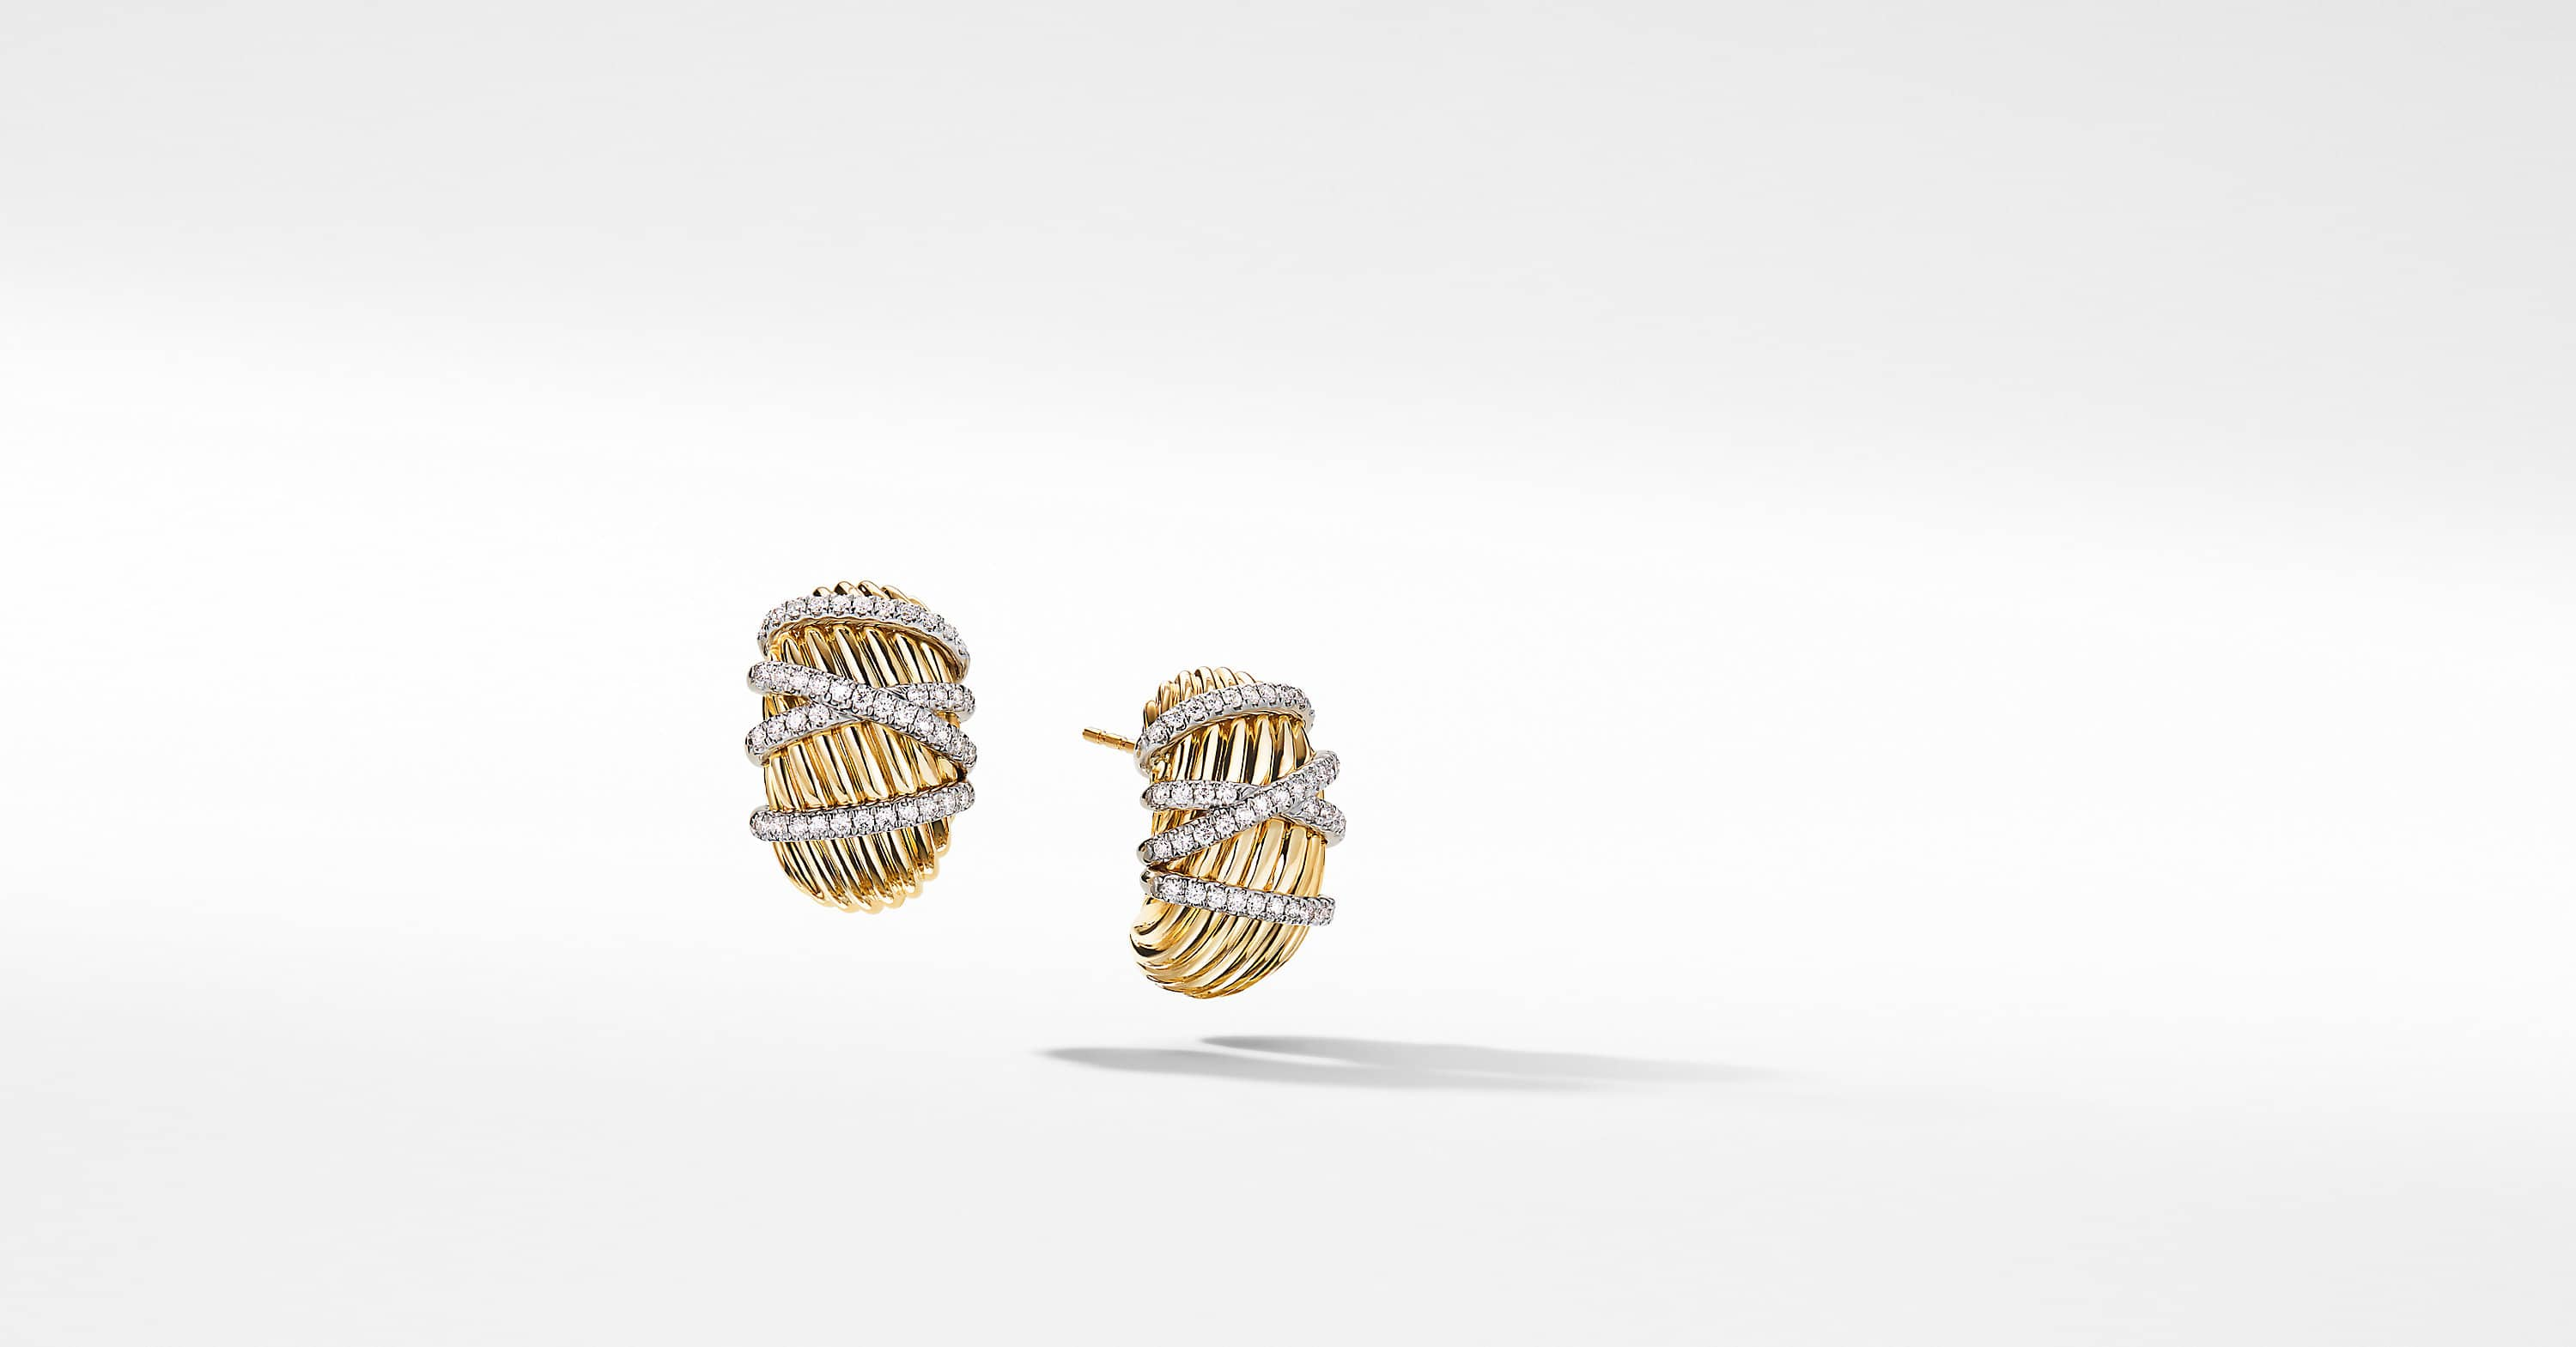 Helena Shrimp Earrings in 18K Yellow Gold with Diamonds